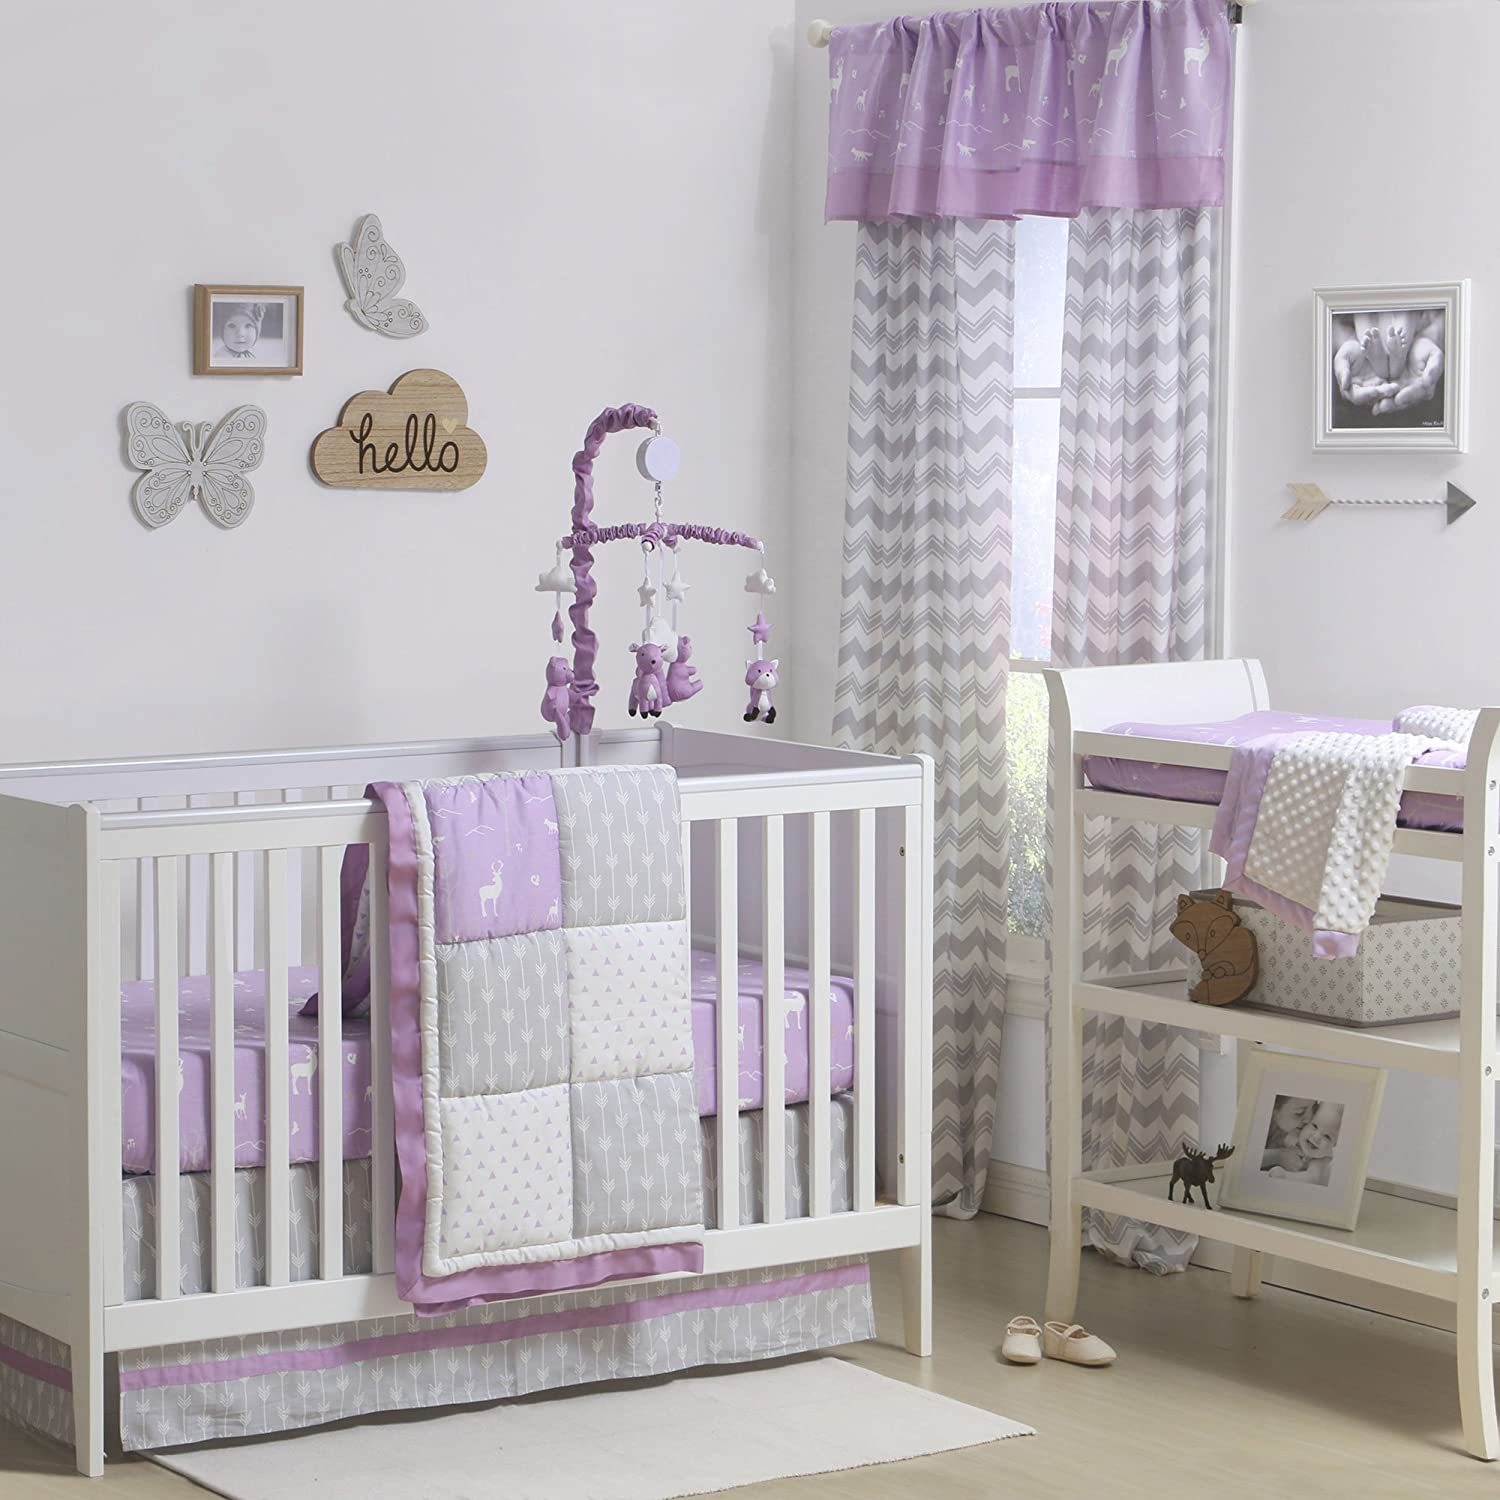 Purple and Grey Woodland and Geometric 3 Piece Crib Bedding by The Peanut Shell